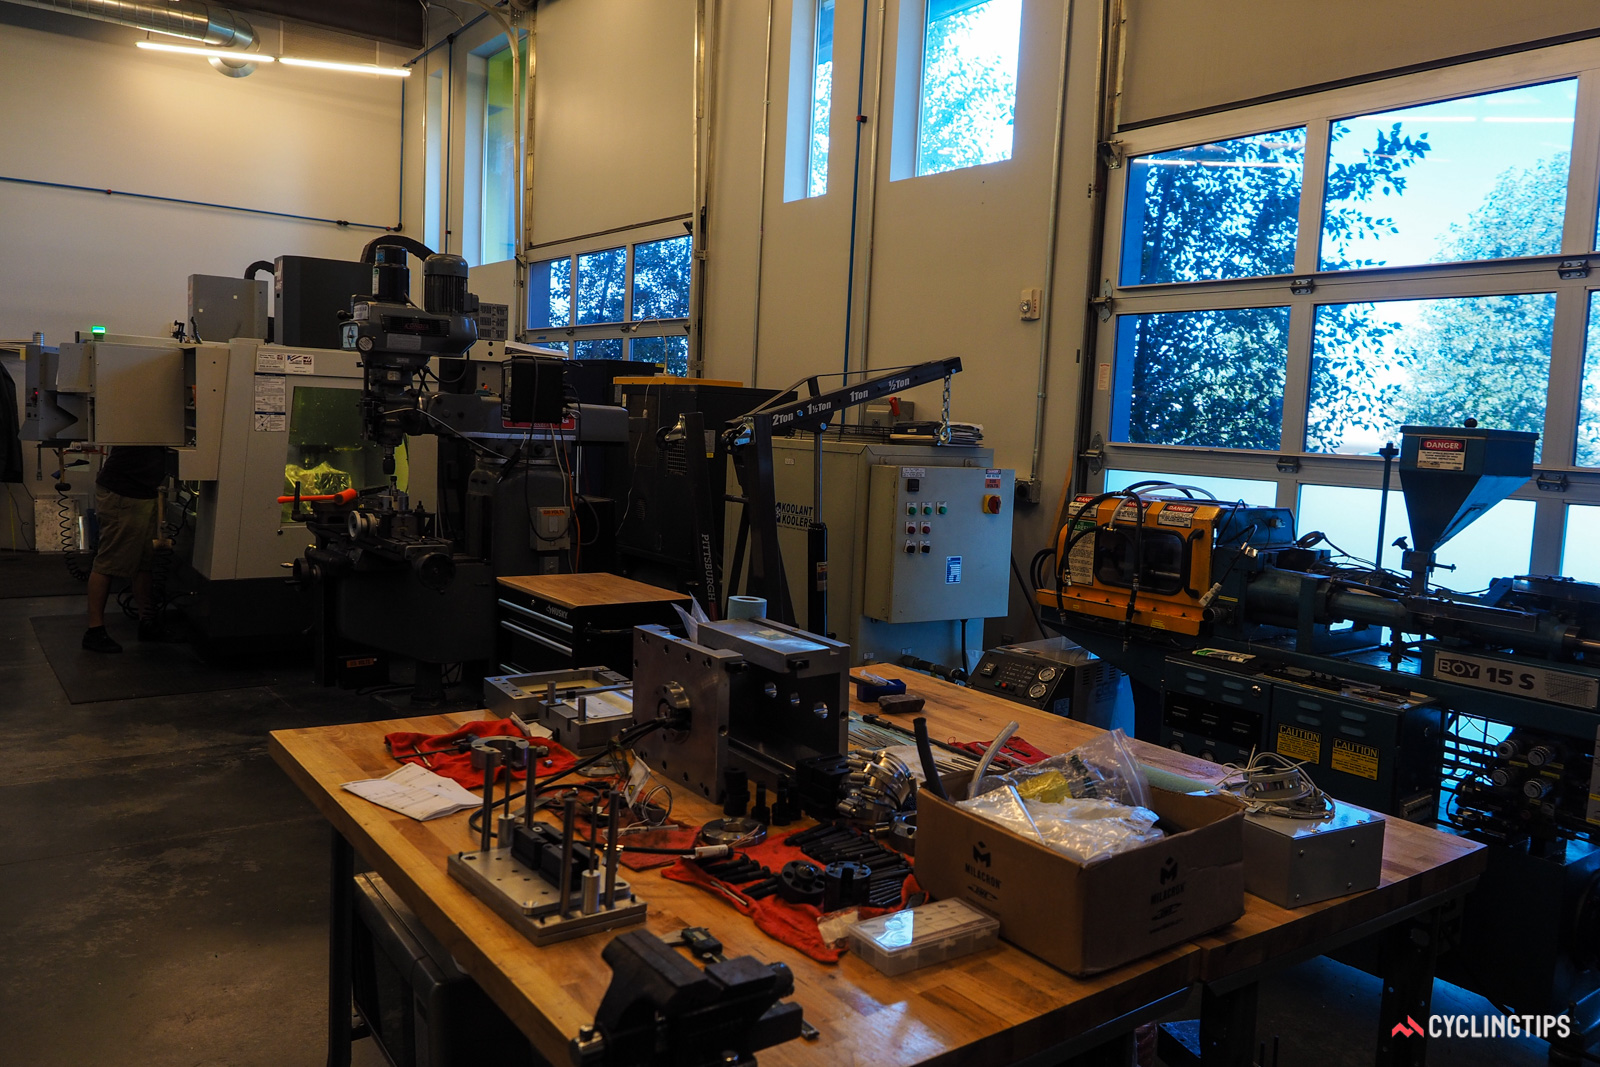 Boa today occupies an entire building in Denver, Colorado - and seeing as the company is bursting at the seams, it's already scouting a new location with more space. Among the many on-site capabilities is a full prototype shop.